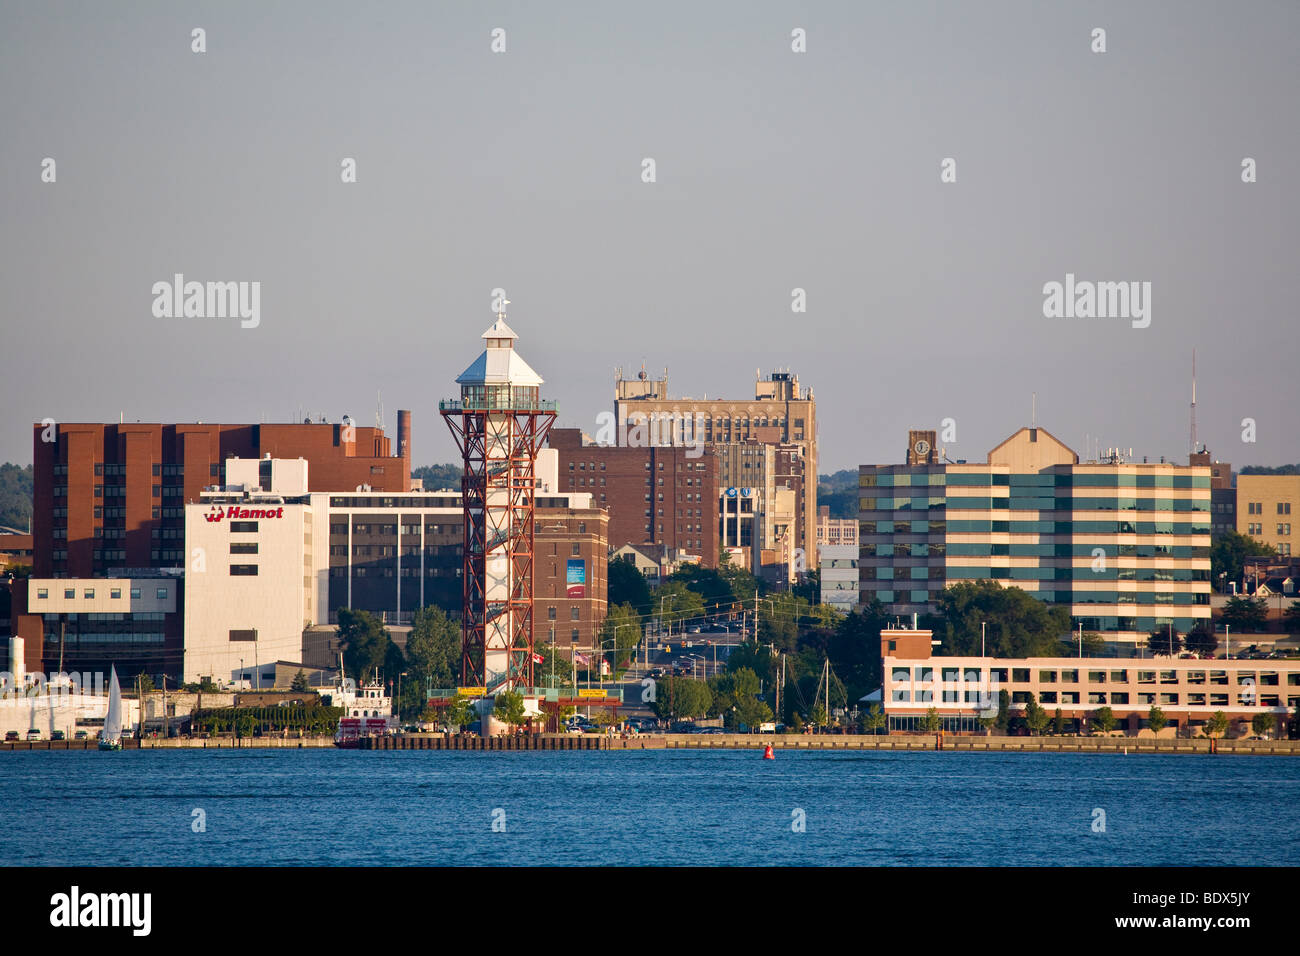 Bicentennial Tower and Dobbins Landing on the waterfront of Erie Pennsylvania, United States - Stock Image